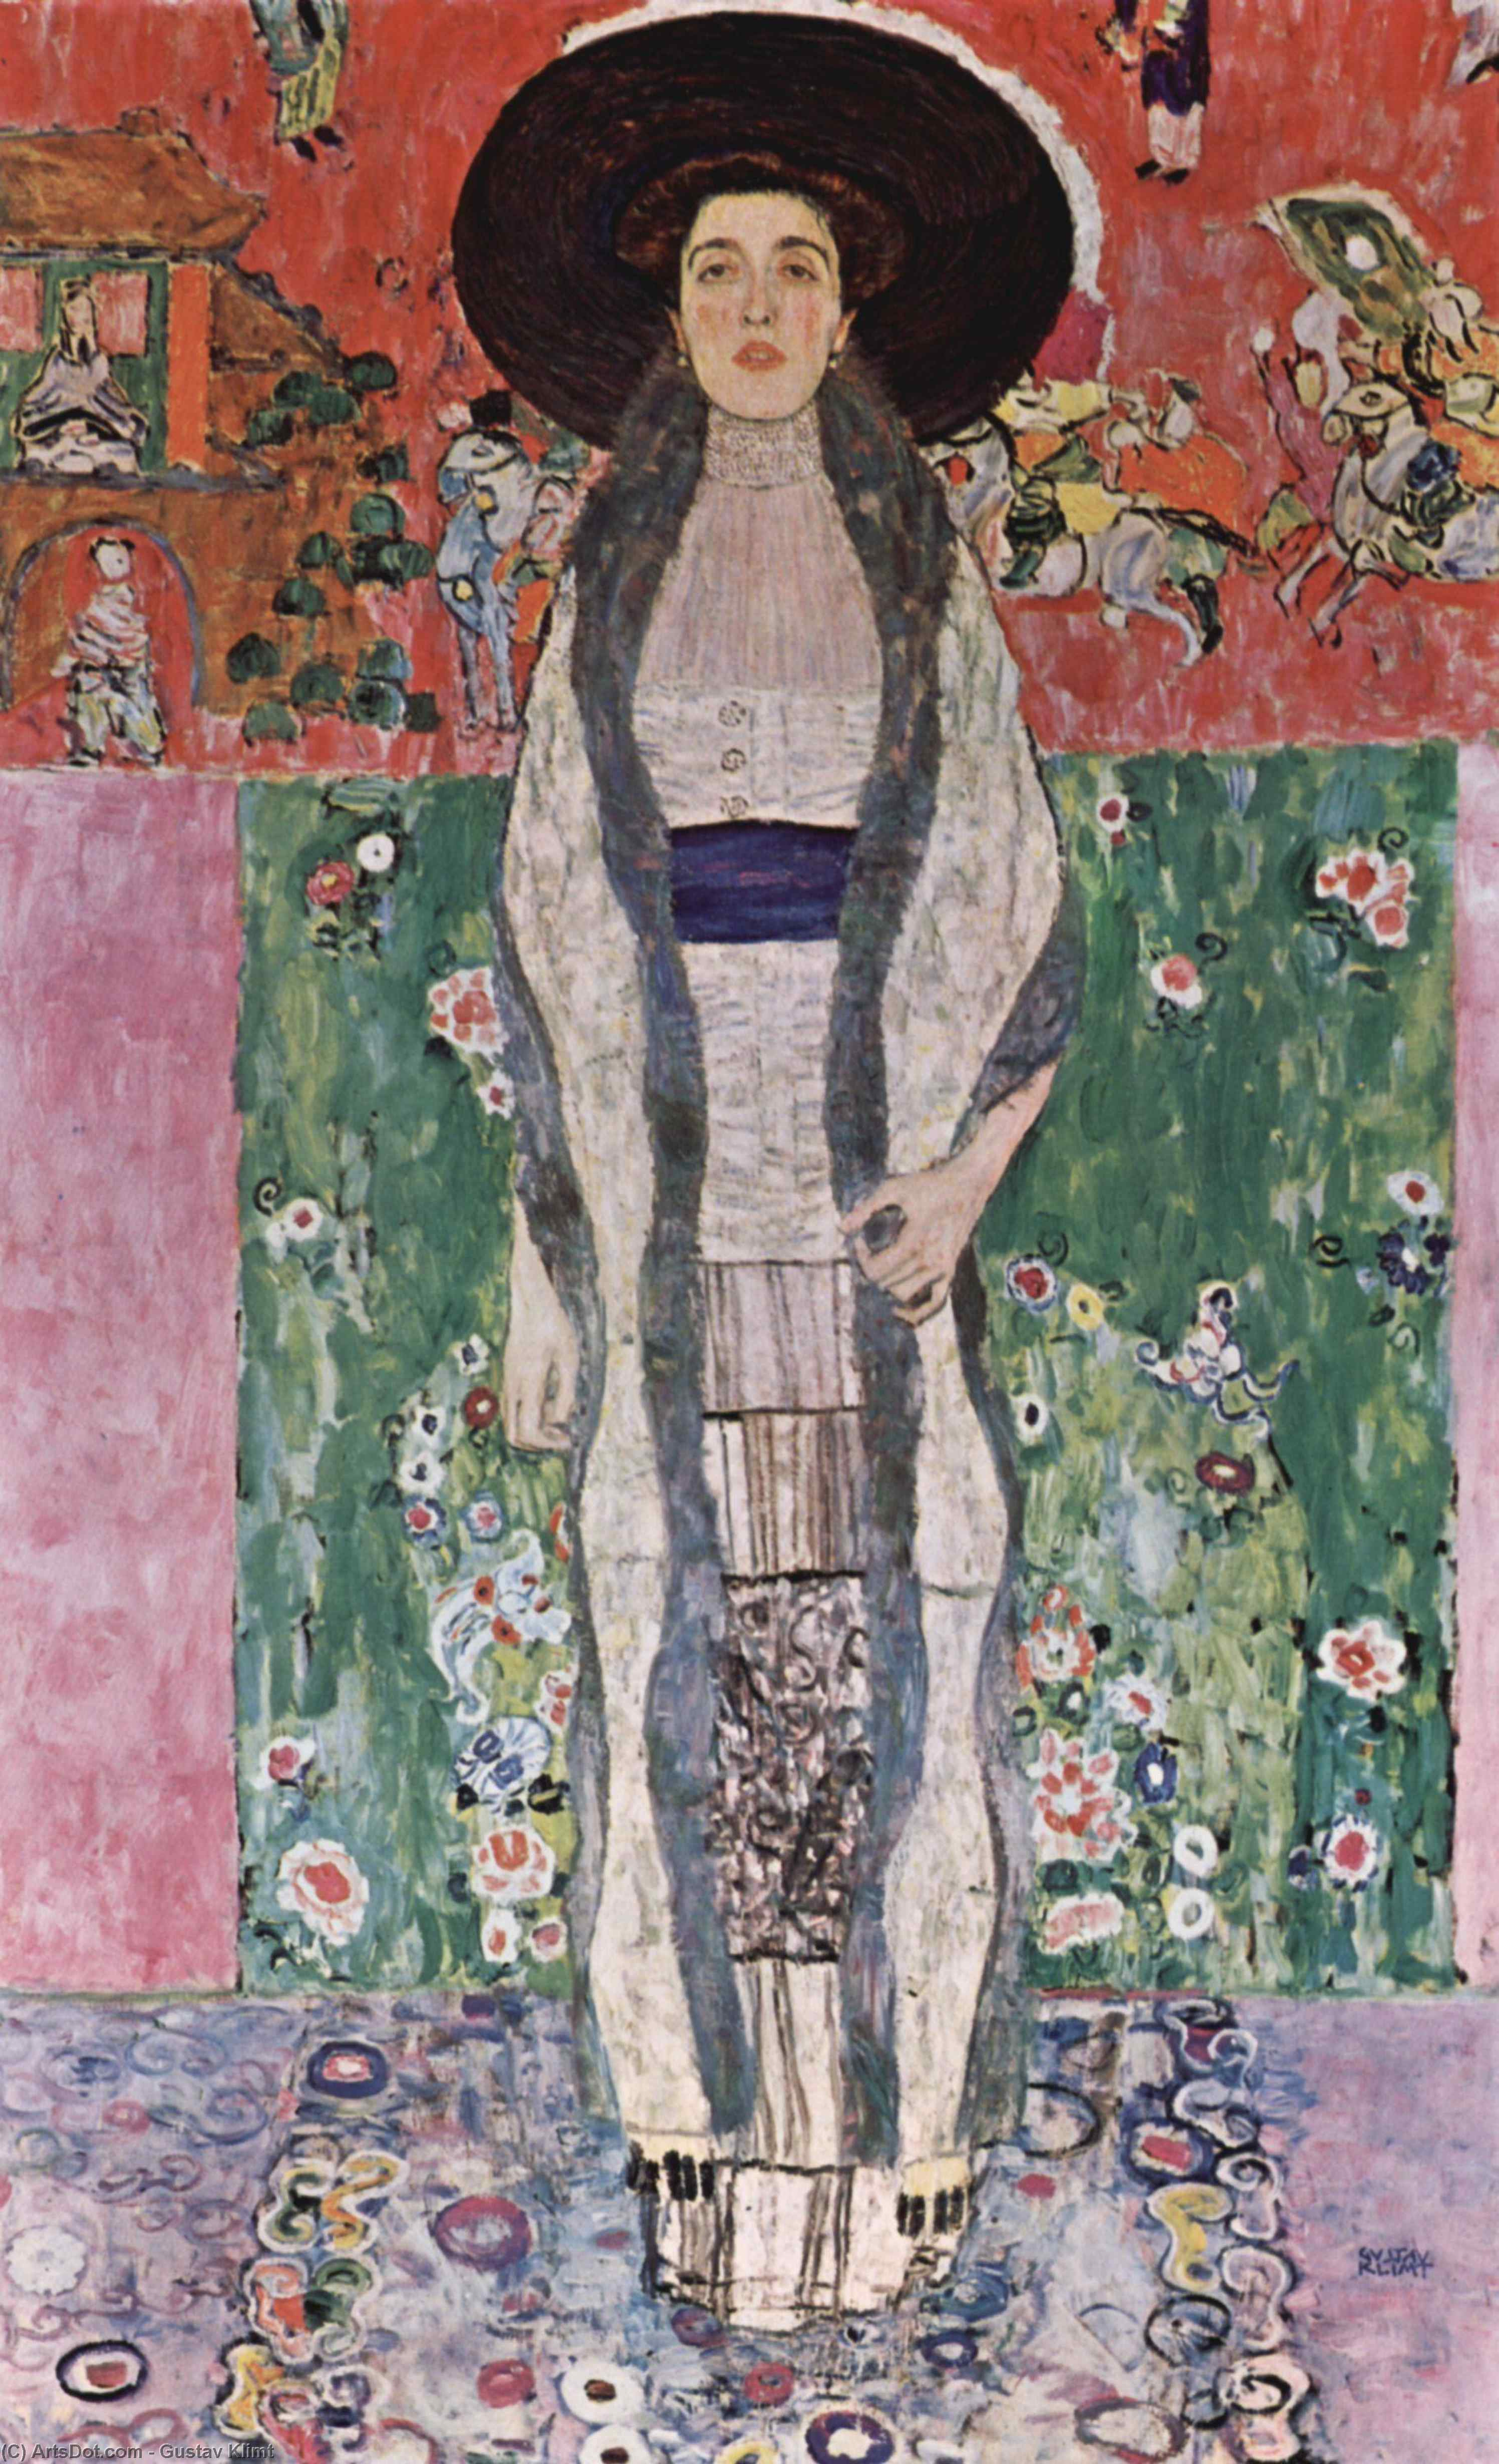 Wikioo.org - The Encyclopedia of Fine Arts - Painting, Artwork by Gustav Klimt - Portrait of Adele Bloch-Bauer II